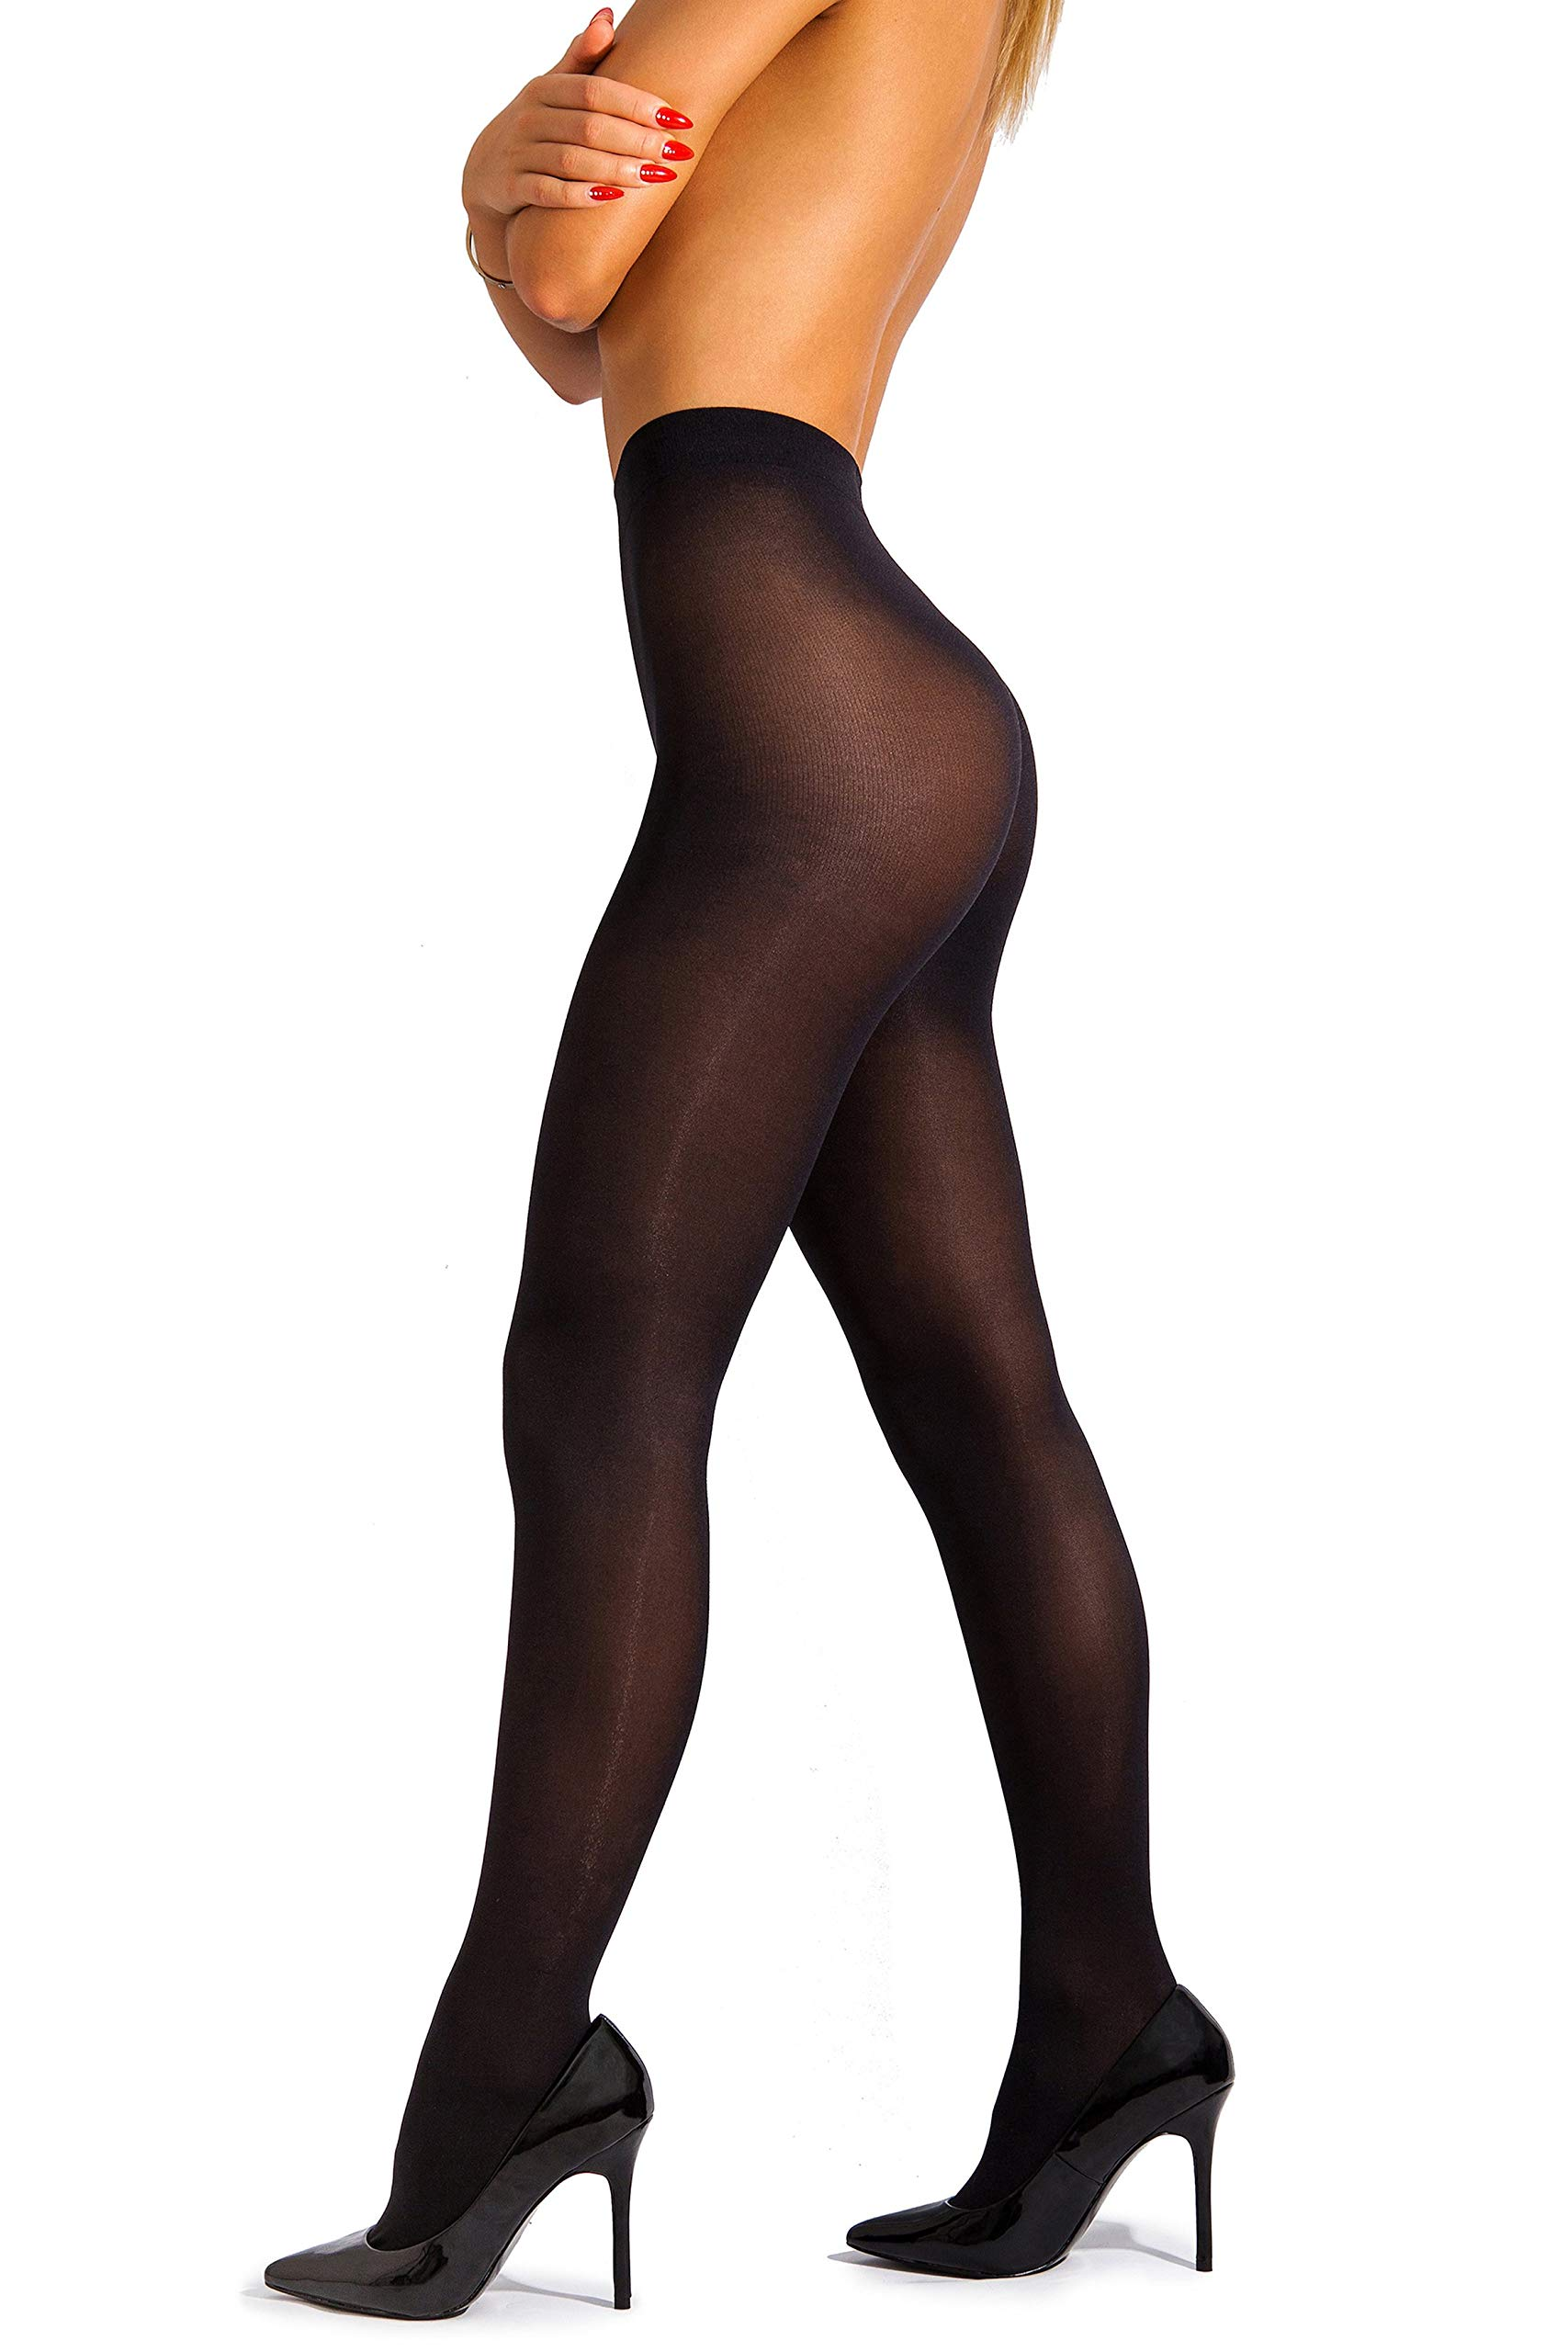 sofsy Opaque Microfibre Tights Invisibly Reinforced Opaque Brief Pantyhose 40Den [Made In Italy] Black 4 - Large